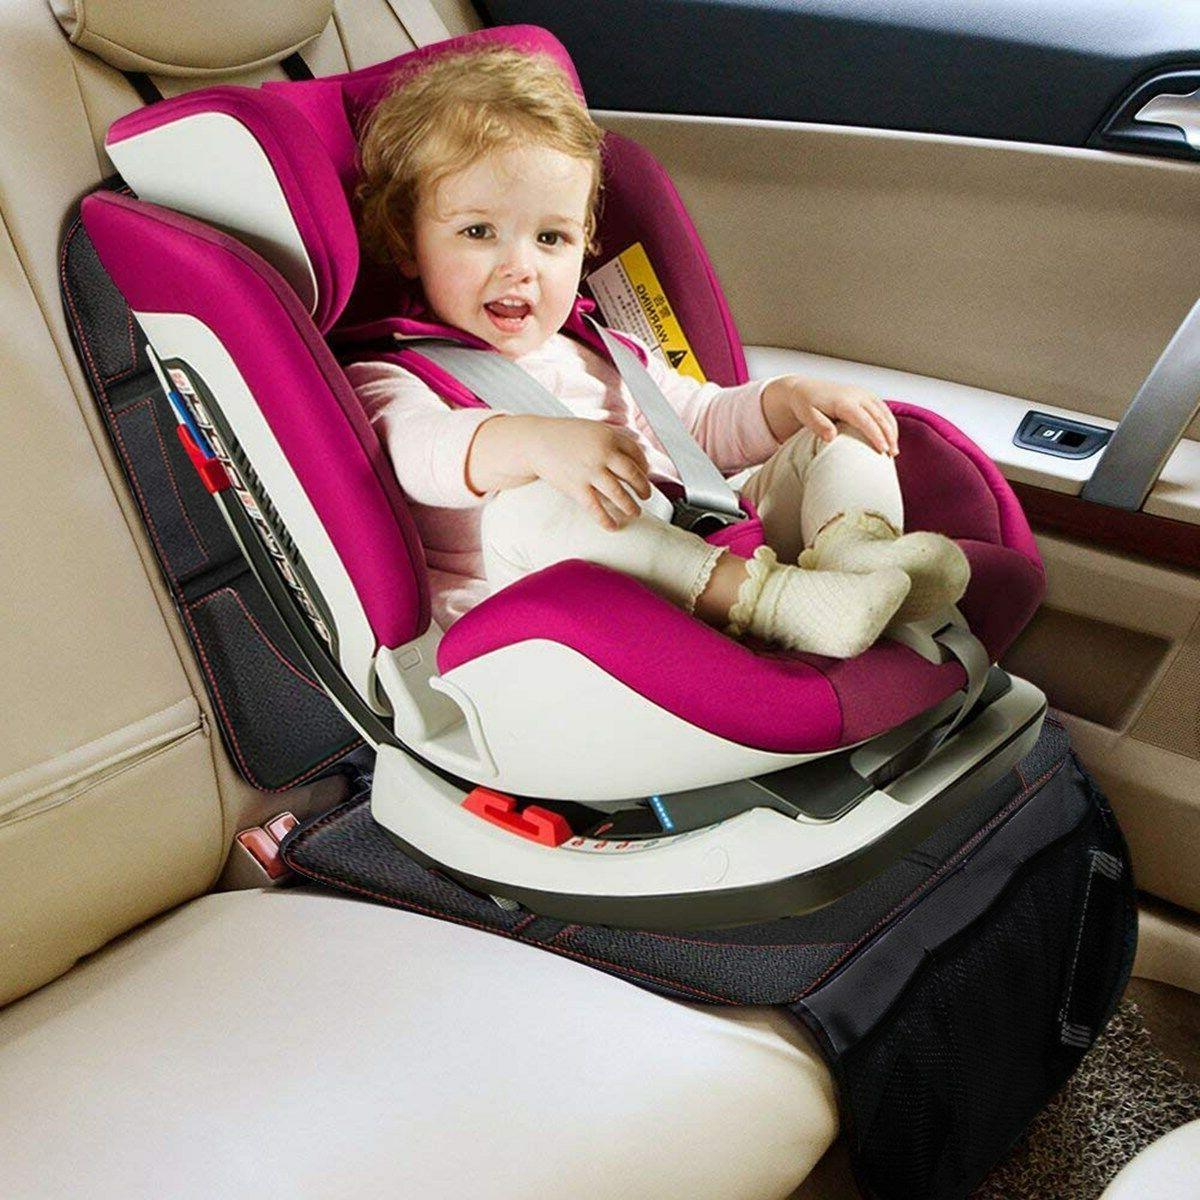 Baby Car Seat Protector Mat Covers Under Child Seat Leather